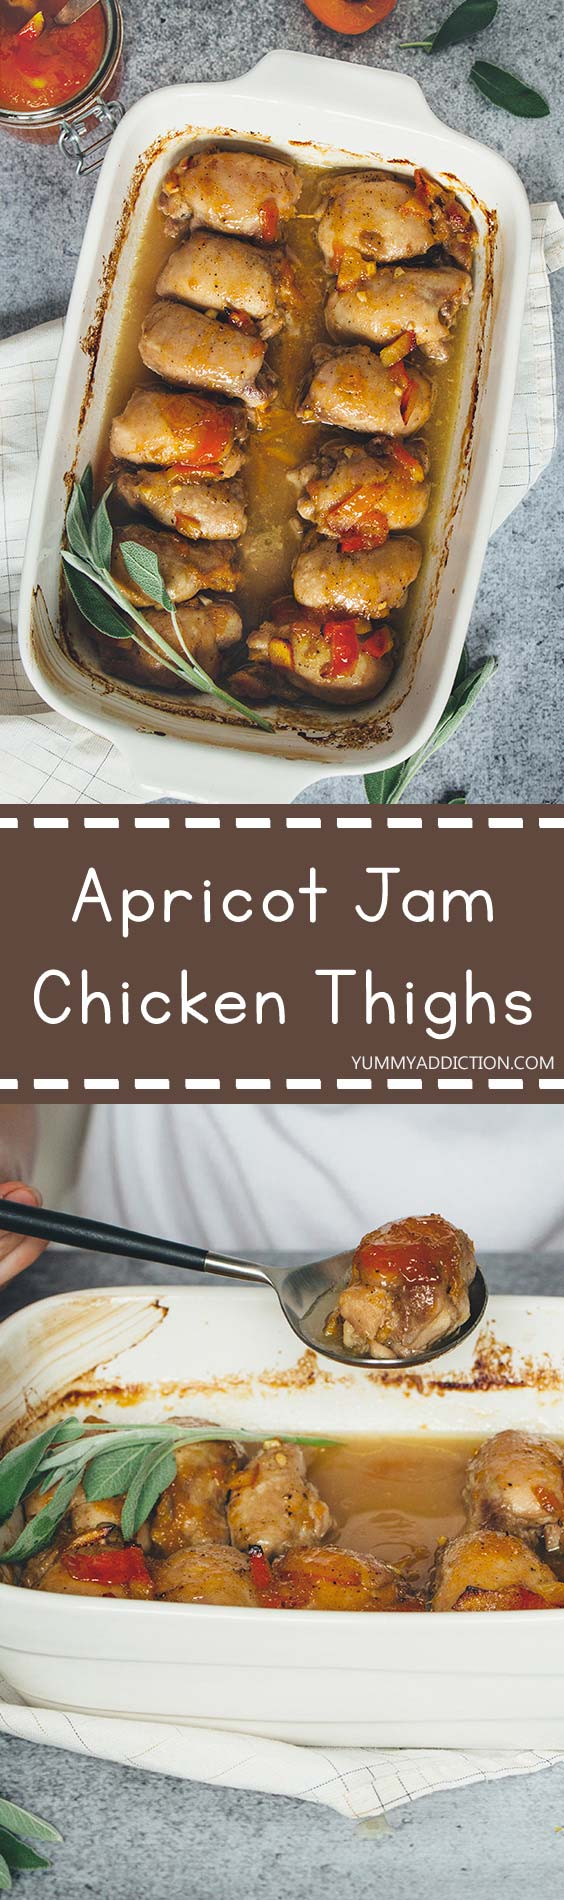 If you can't come up with a dinner idea, these Apricot Jam Chicken Thighs are for you. Really easy and quick to make and oh so delicious! | yummyaddiction.com